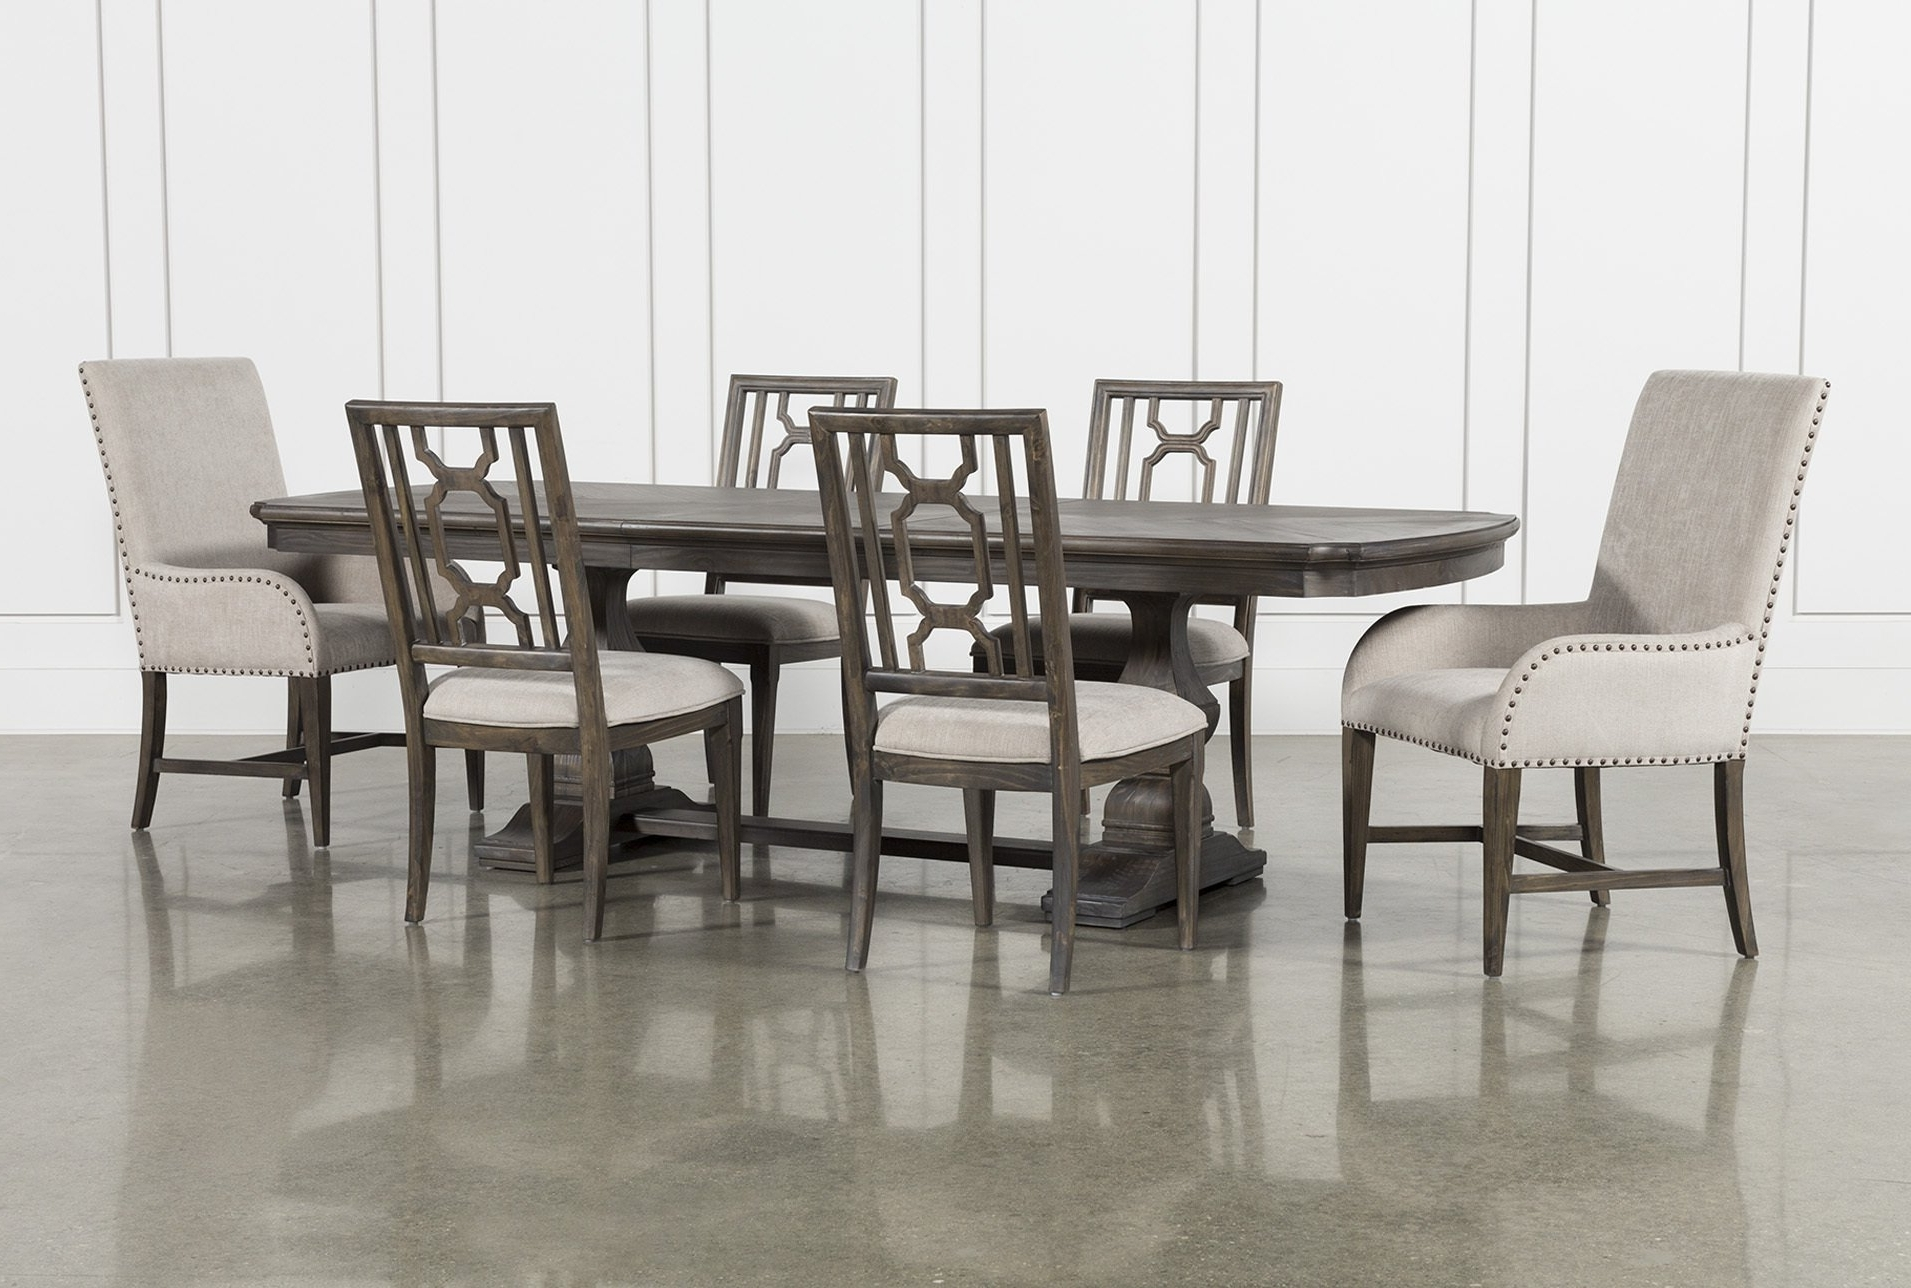 Laurent 7 Piece Rectangle Dining Set With Wood And Host Chairs Intended For Most Popular Laurent Rectangle Dining Tables (View 10 of 25)